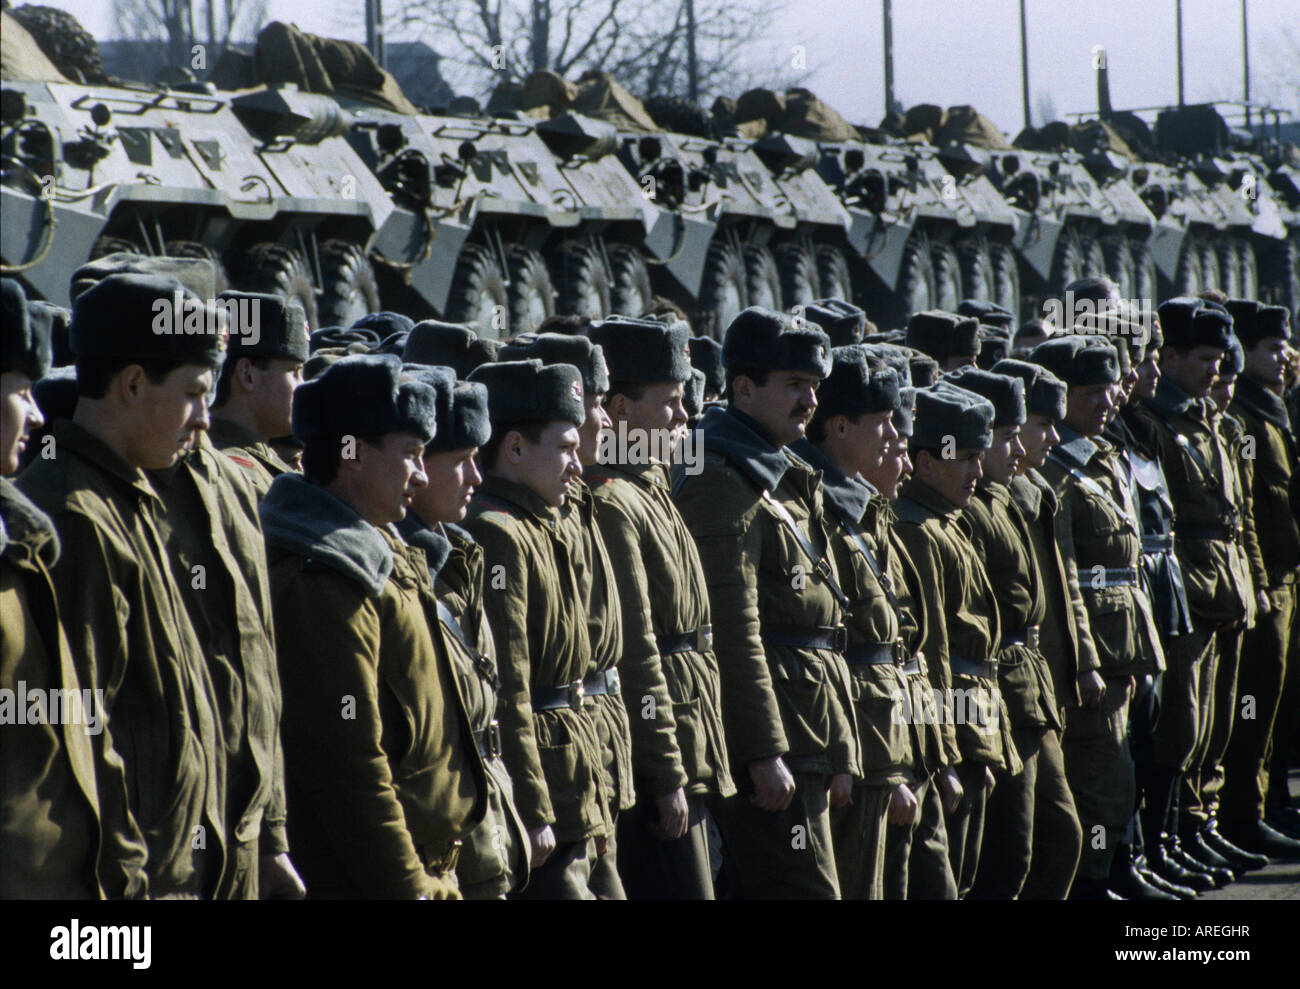 Soviet Armed Forces / Soviet Army (1946-1991) - Page 5 Russian-soldiers-stand-in-front-of-armoured-vehicles-on-a-train-during-AREGHR